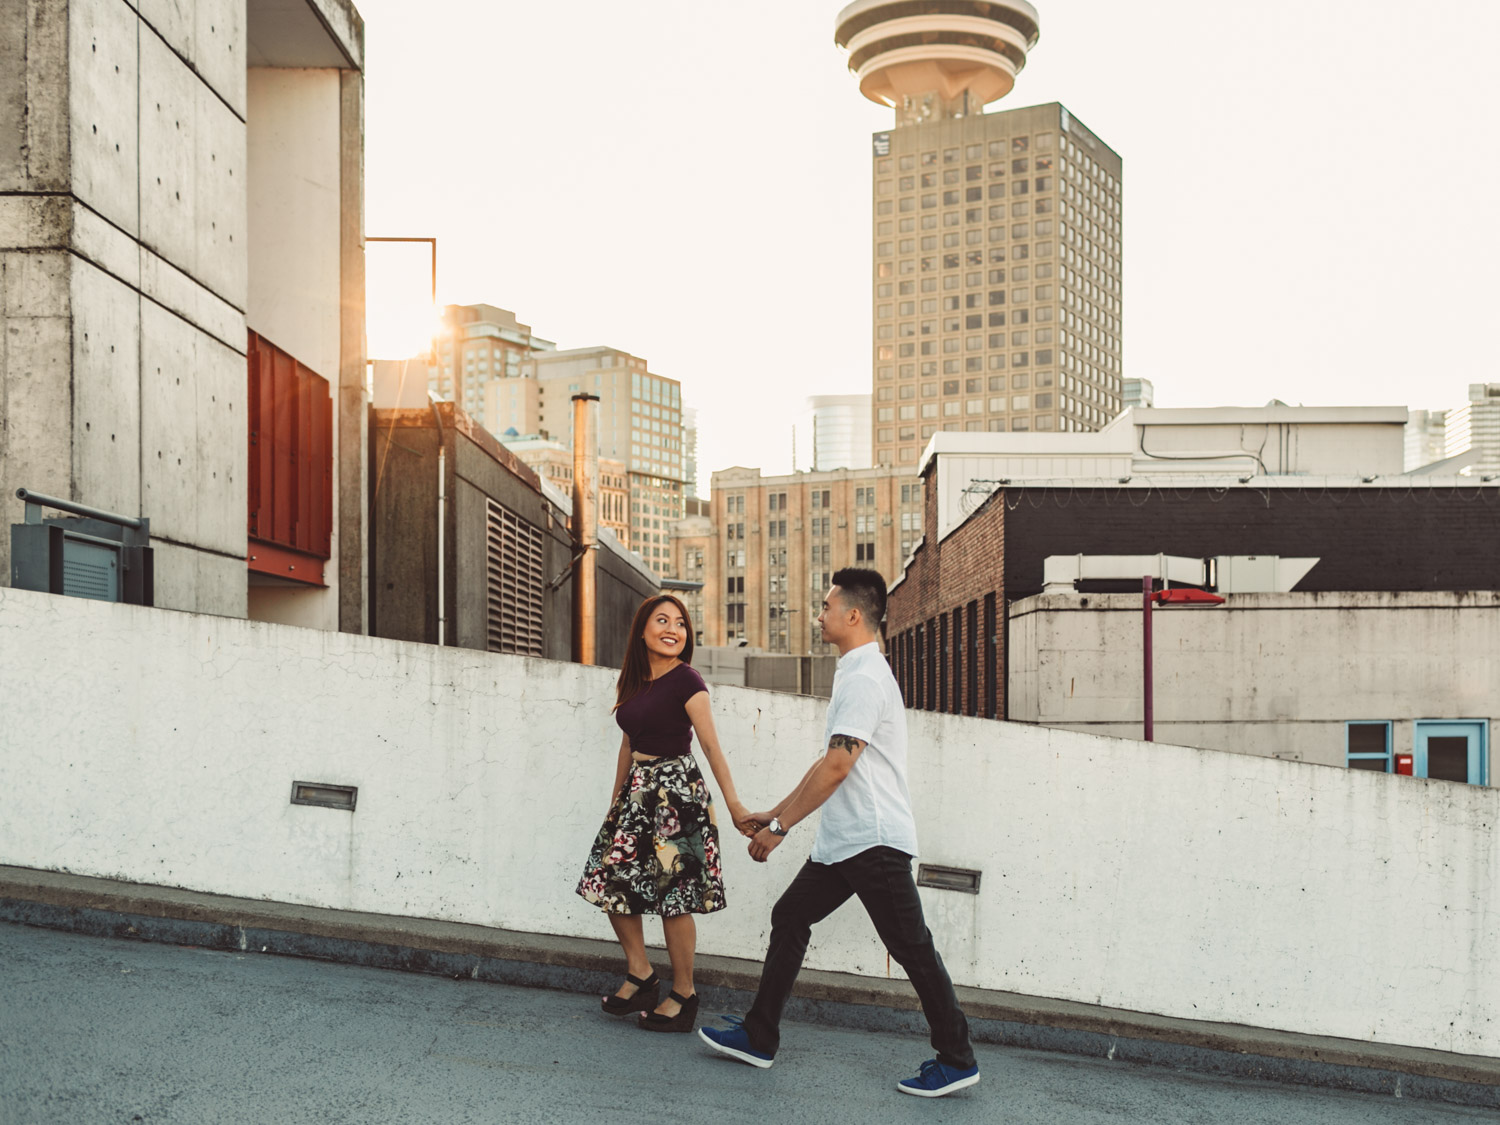 engagement photographer in vancouver at gastown during sunset on rooftop